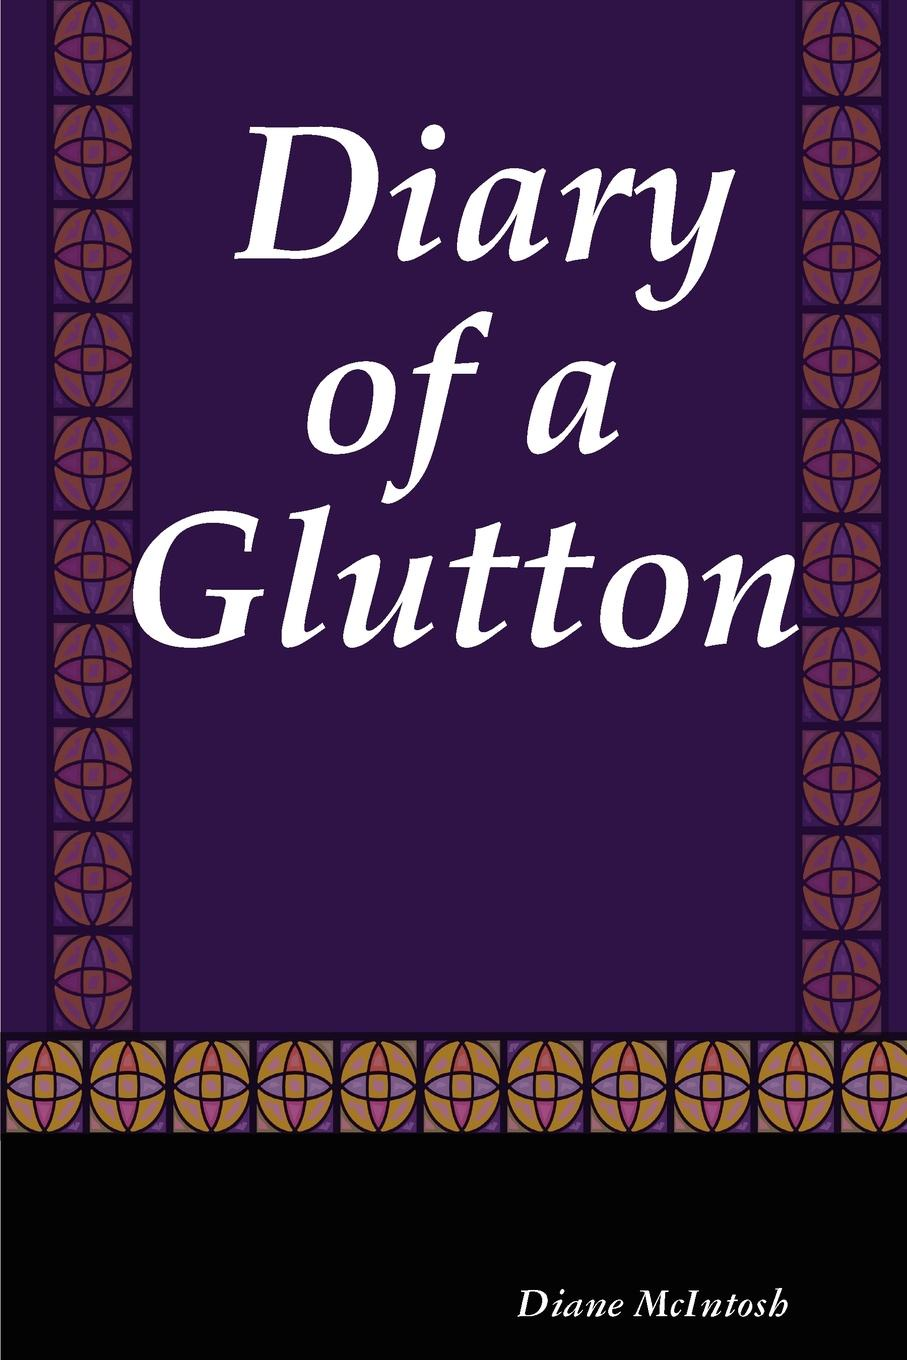 Diane McIntosh Diary of a Glutton john mcintosh a brief memoir of the last few weeks of anne mcintosh microform daughter of john and marion mcintosh earltown